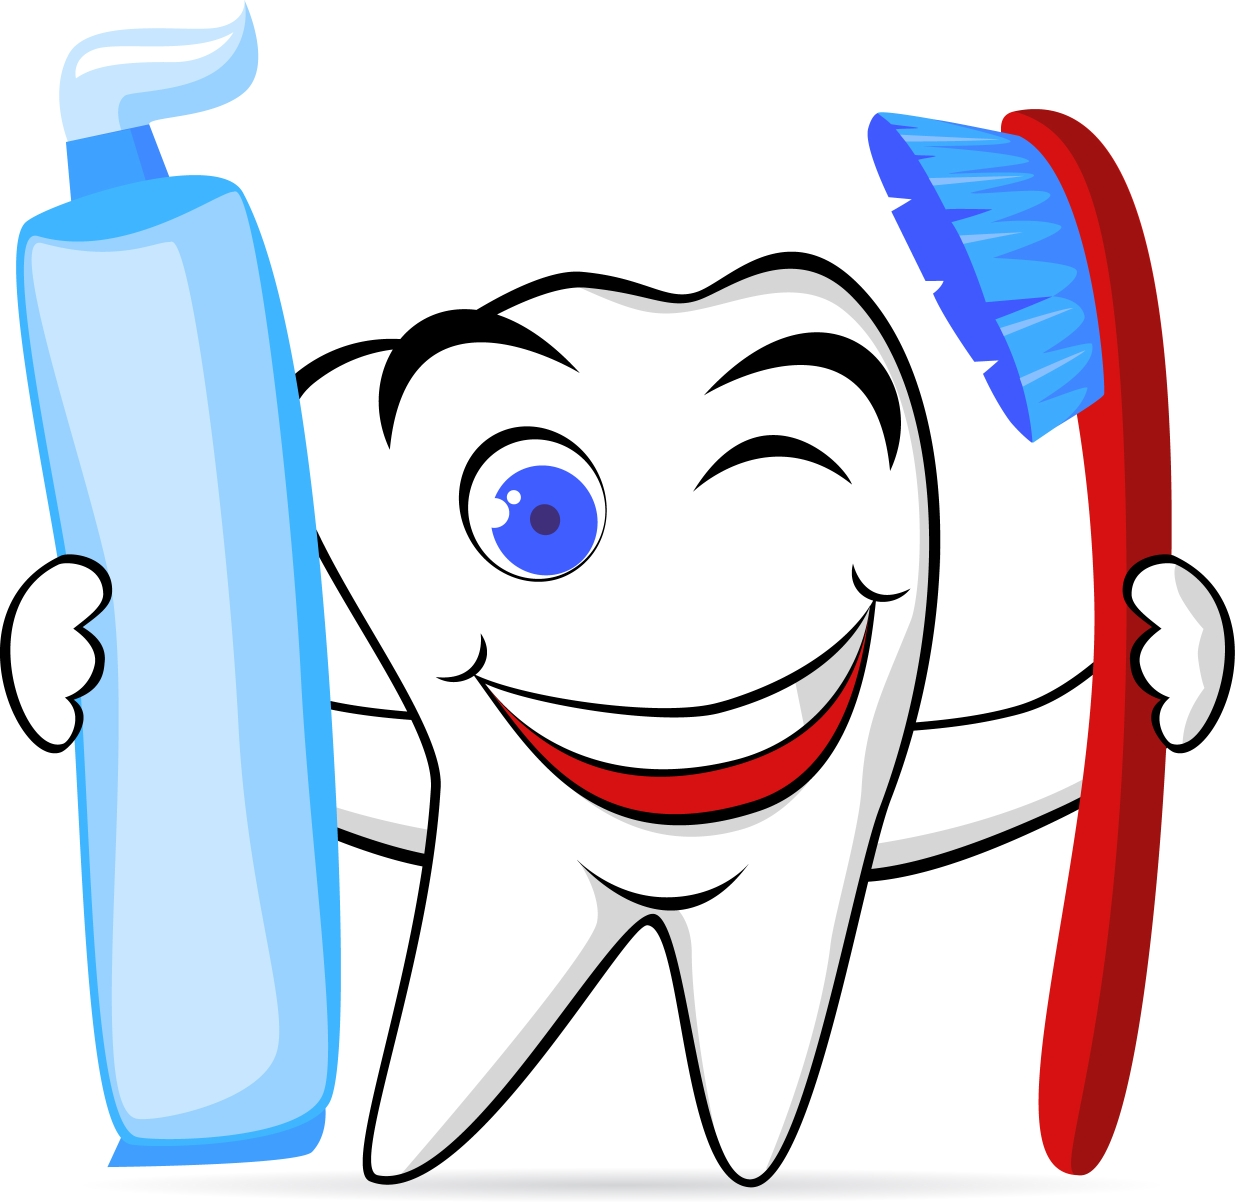 1235x1202 Clip Art Tooth Free Collection Download And Share Clip Art Tooth